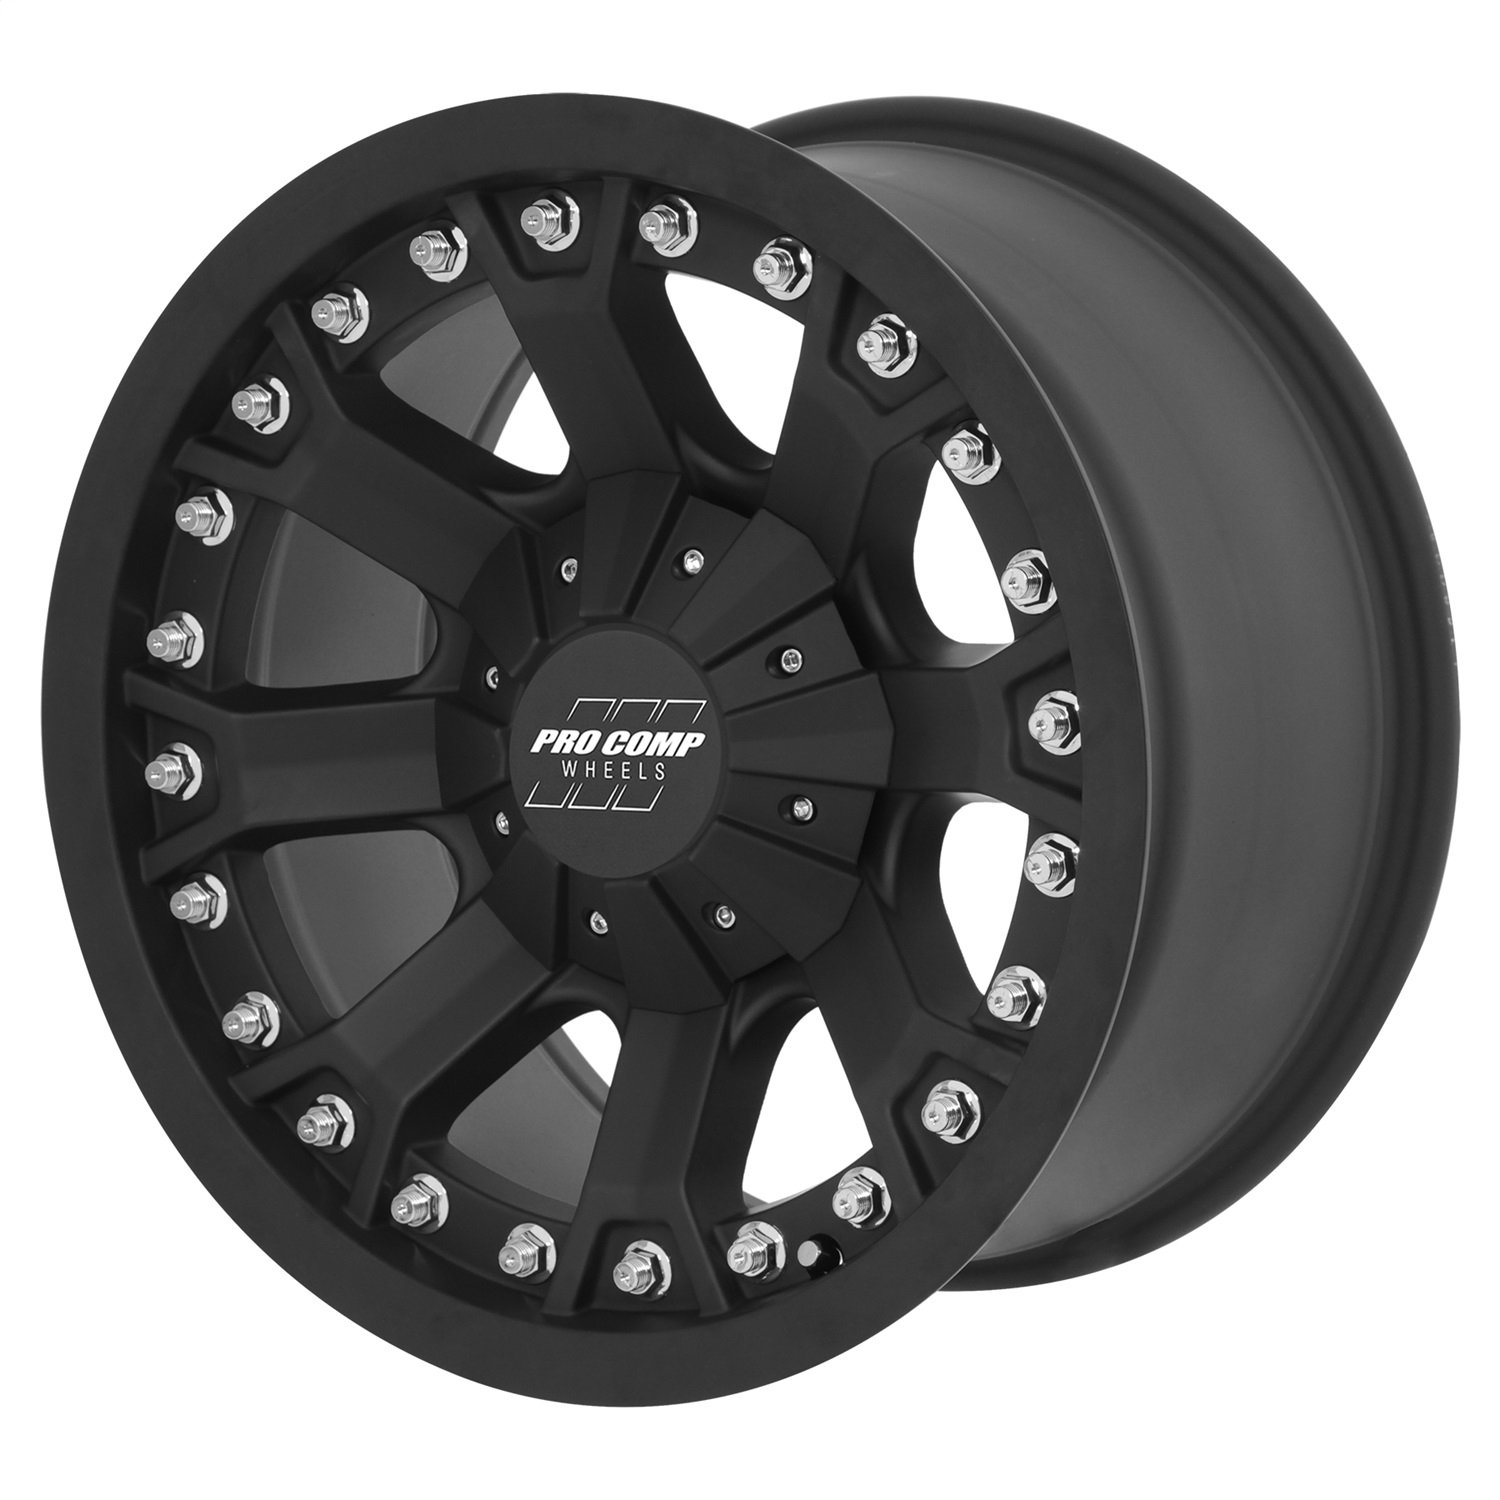 Pro Comp Alloys Series 33 Wheel with Flat Black Finish (18x9'/5x127mm) Pro Comp Wheels PXA7033-8973